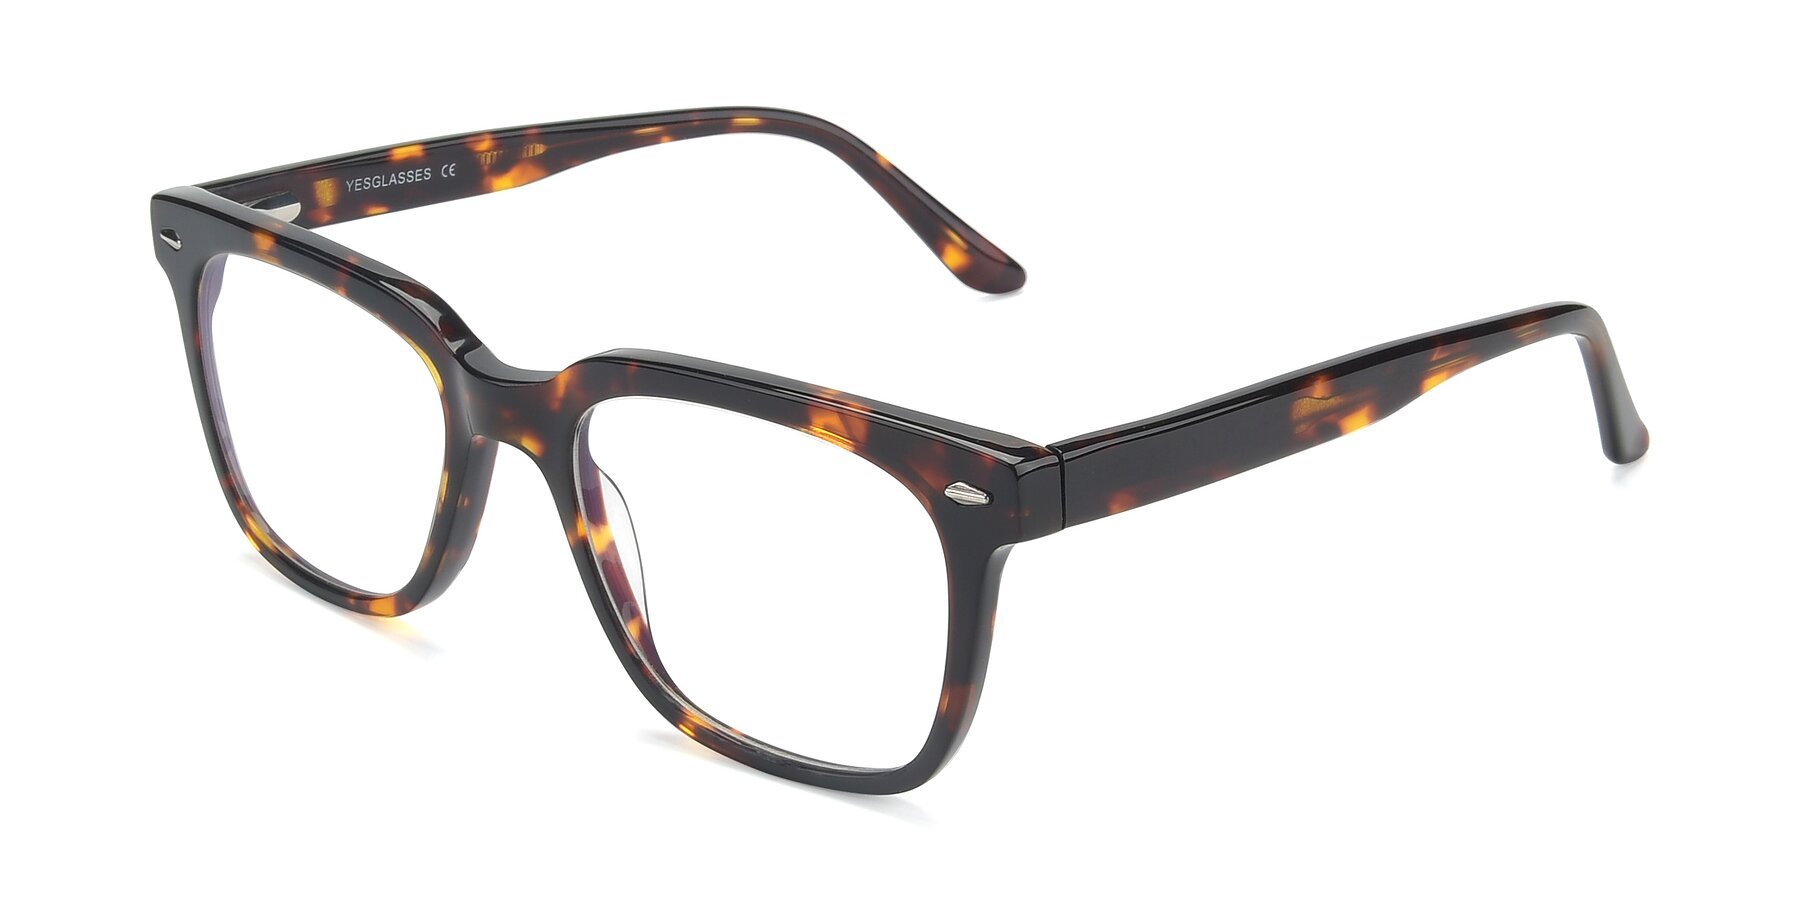 Angle of 17165 in Tortoise with Clear Blue Light Blocking Lenses